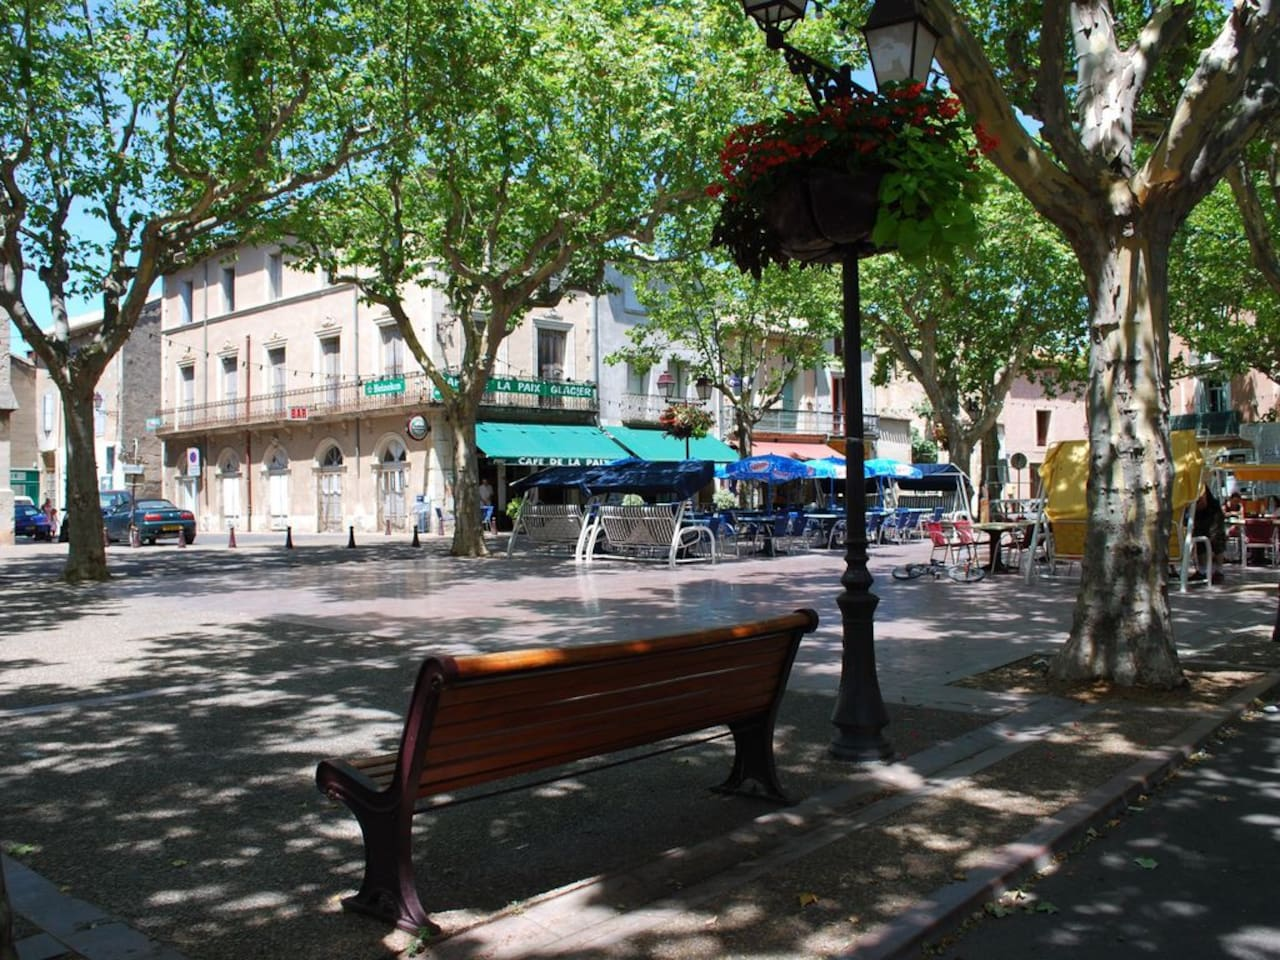 The Square in Capestang